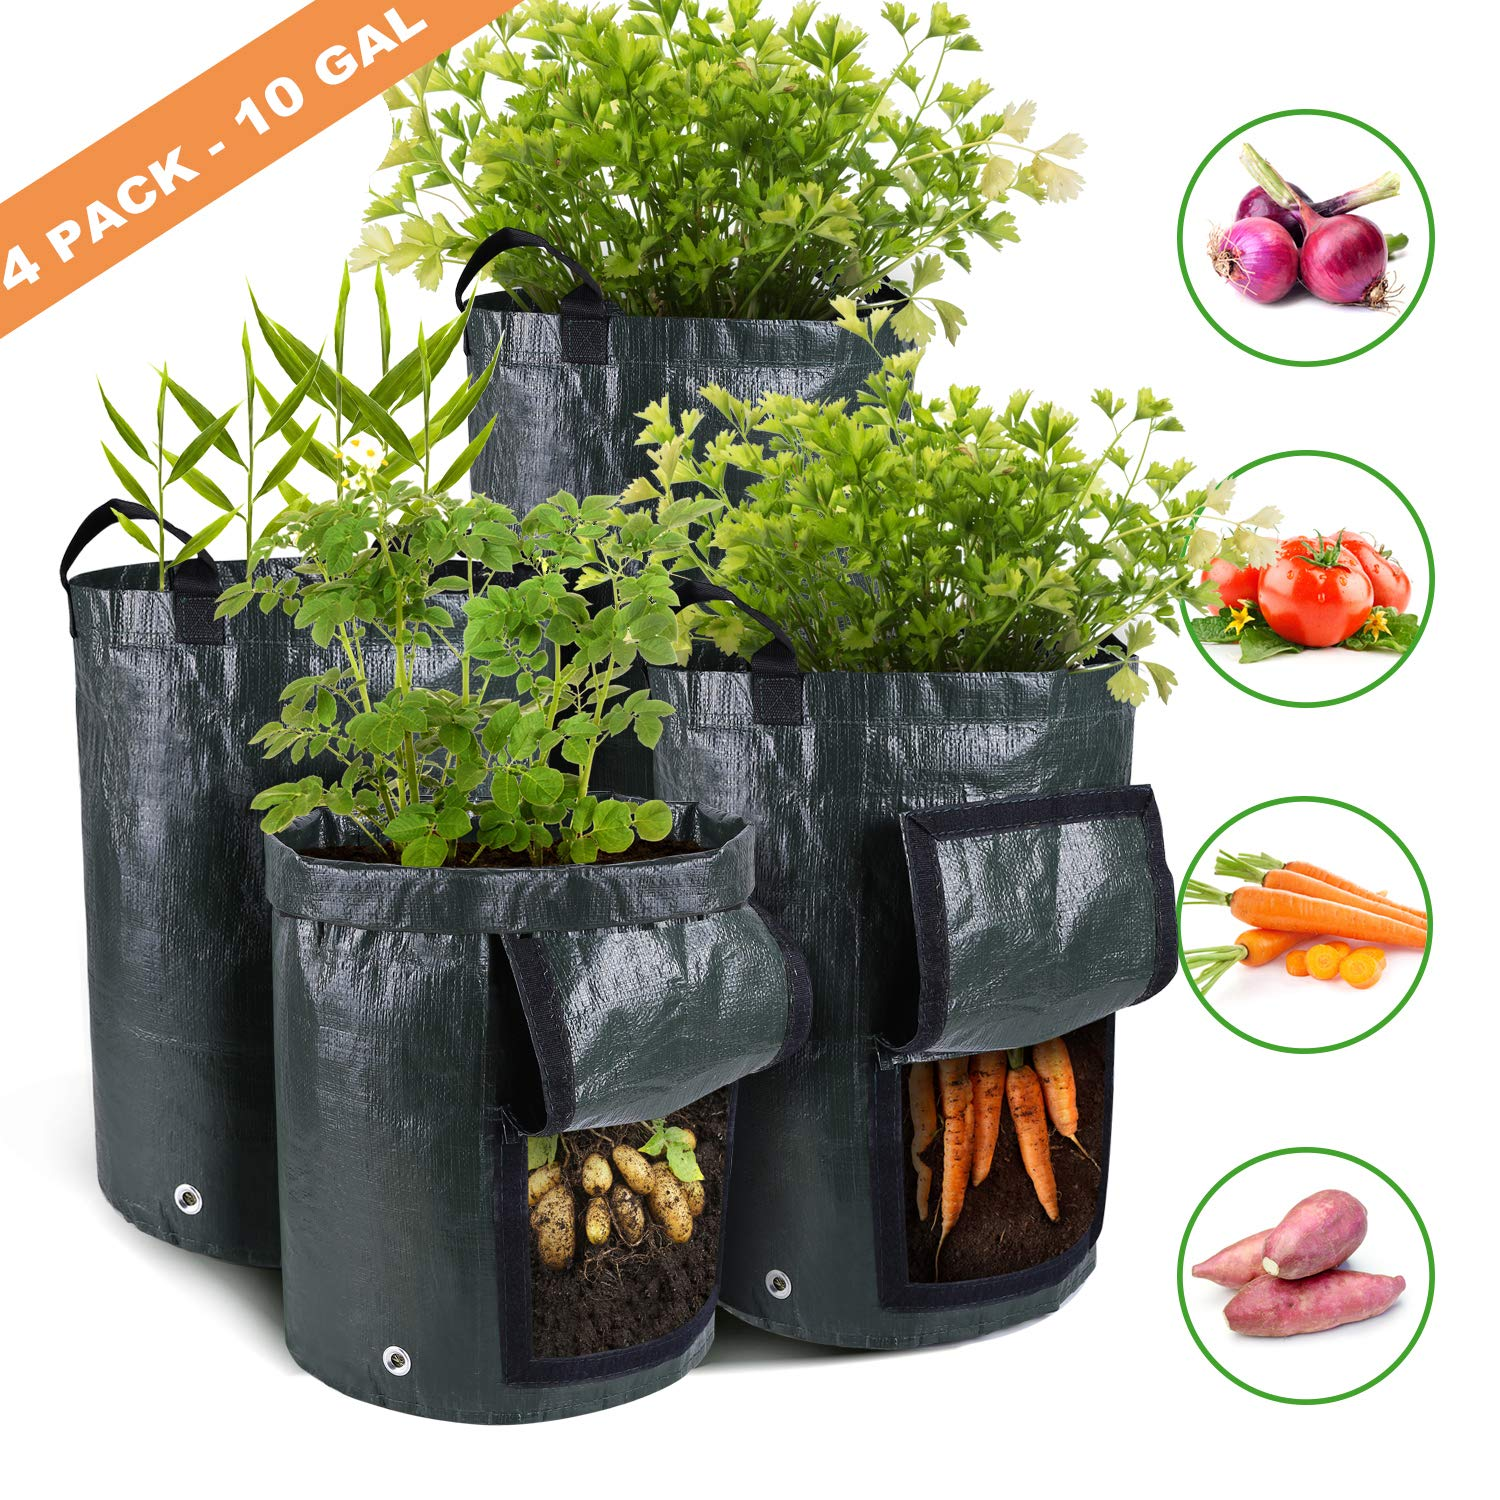 Ohuhu 4-Pack 10 Gallon Garden Potato Grow Bags, Vegetables Plant Growing Bags, Durable Planter Bags, Upgraded PE Aeration Pots with Portable Access Flap Handles, for Potato, Tomato, Carrot etc